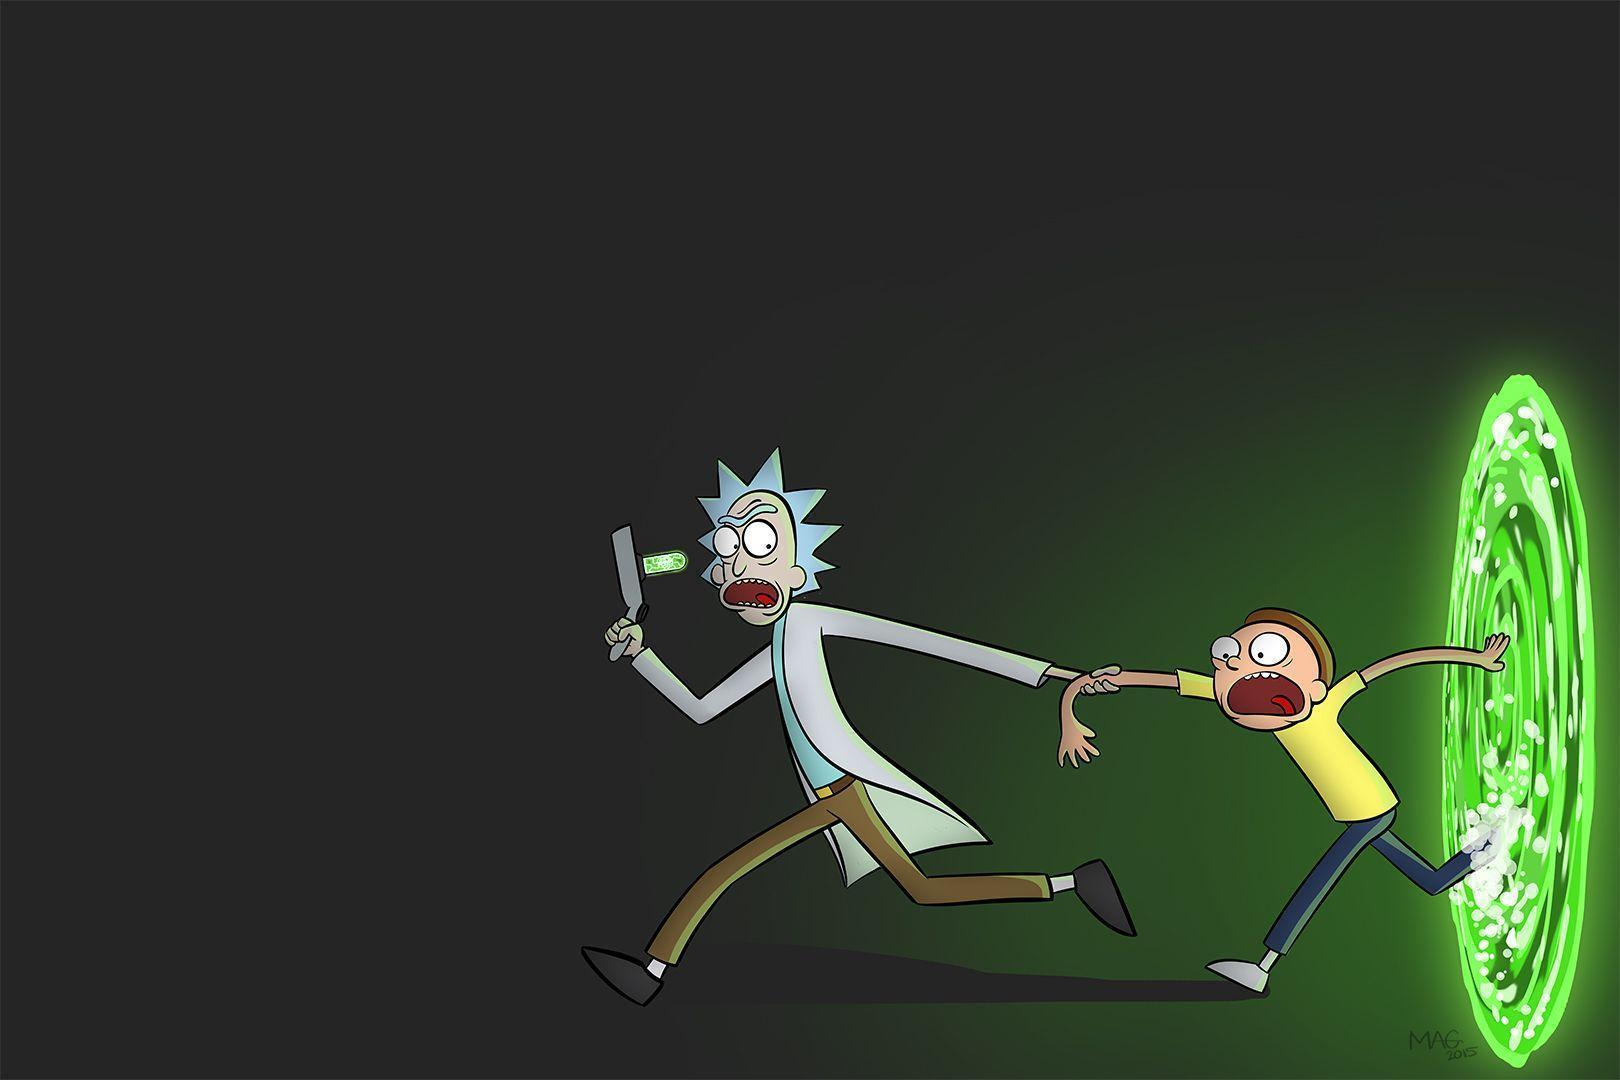 Ricky And Morty Season 5 Episode 11 Release Date, And Spoilers